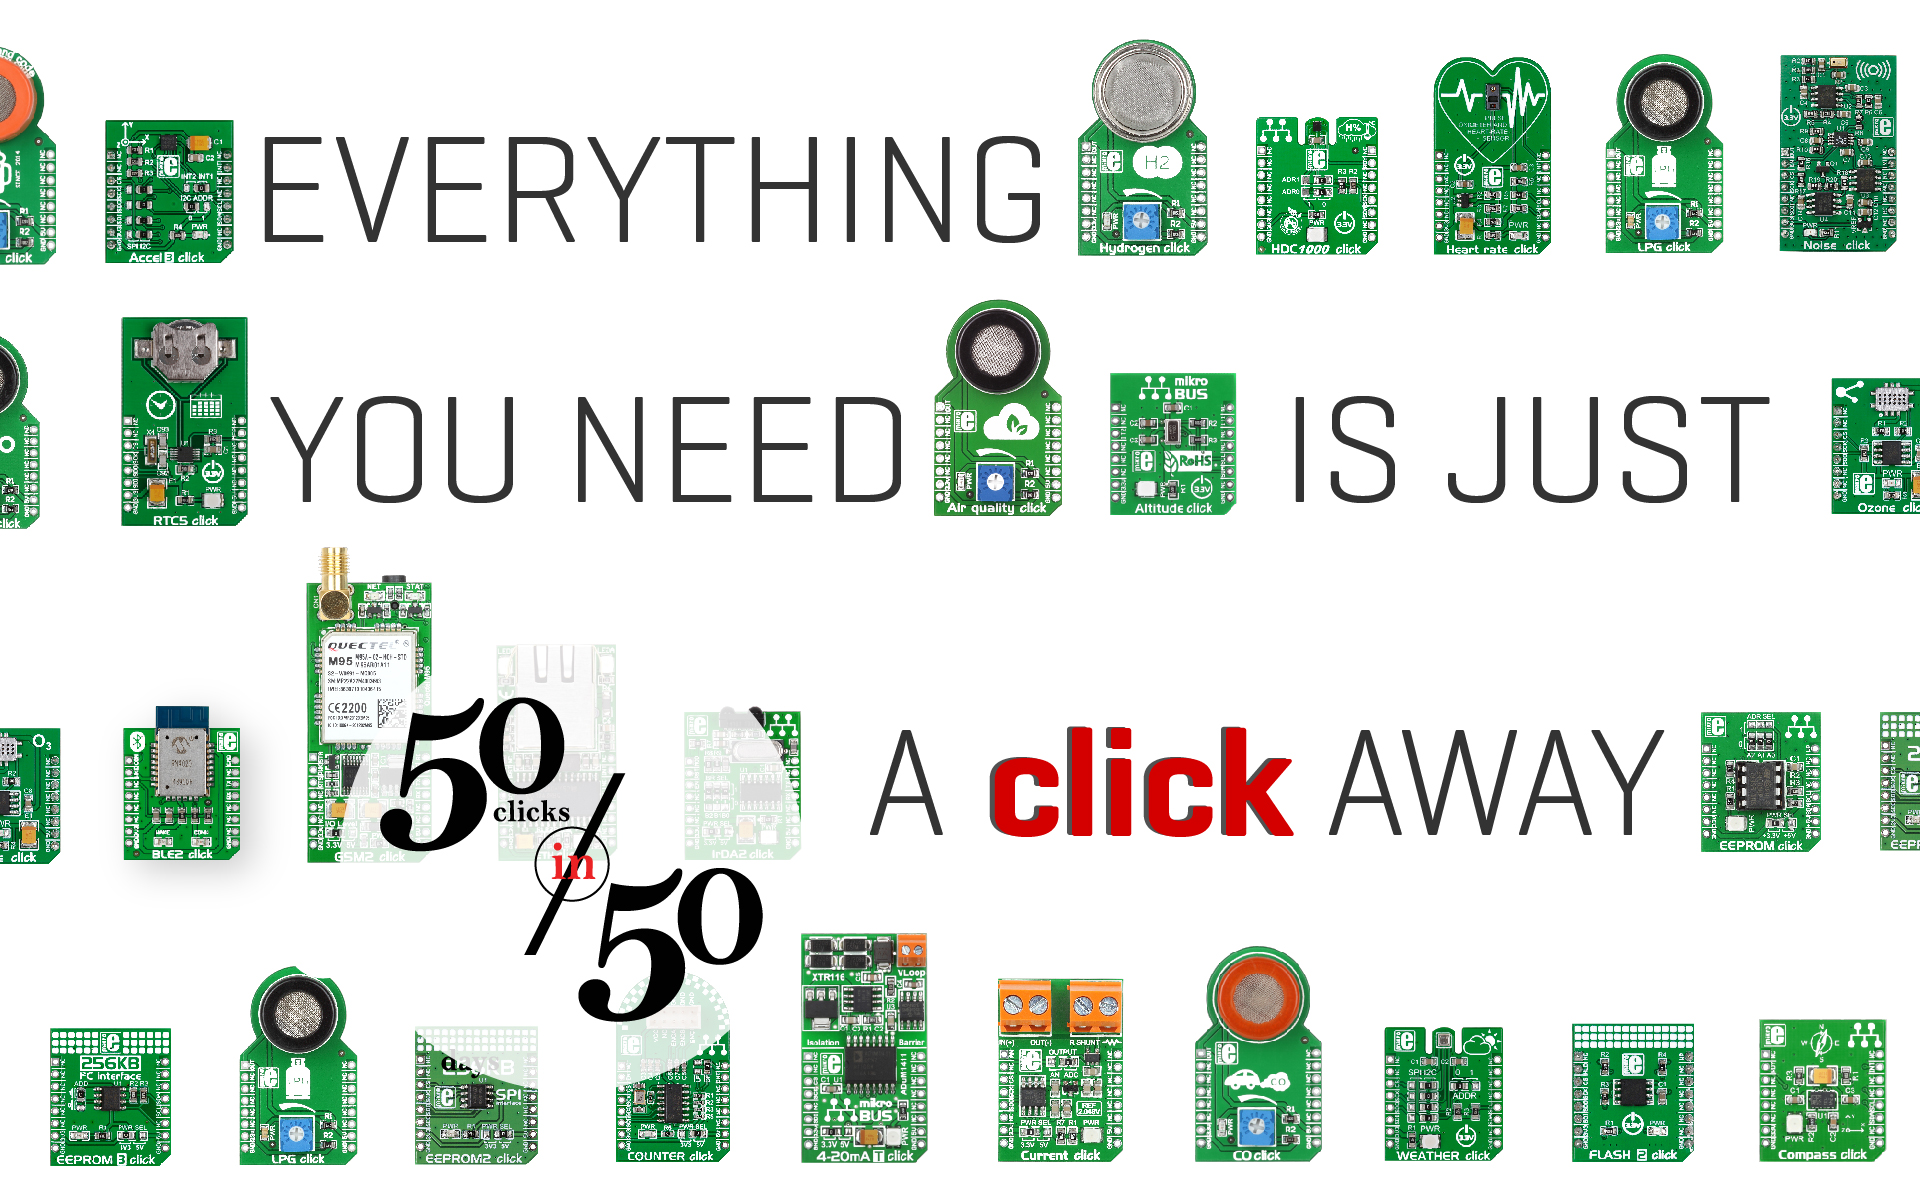 50 in 50 with Microchip– Everything you need is just a click away